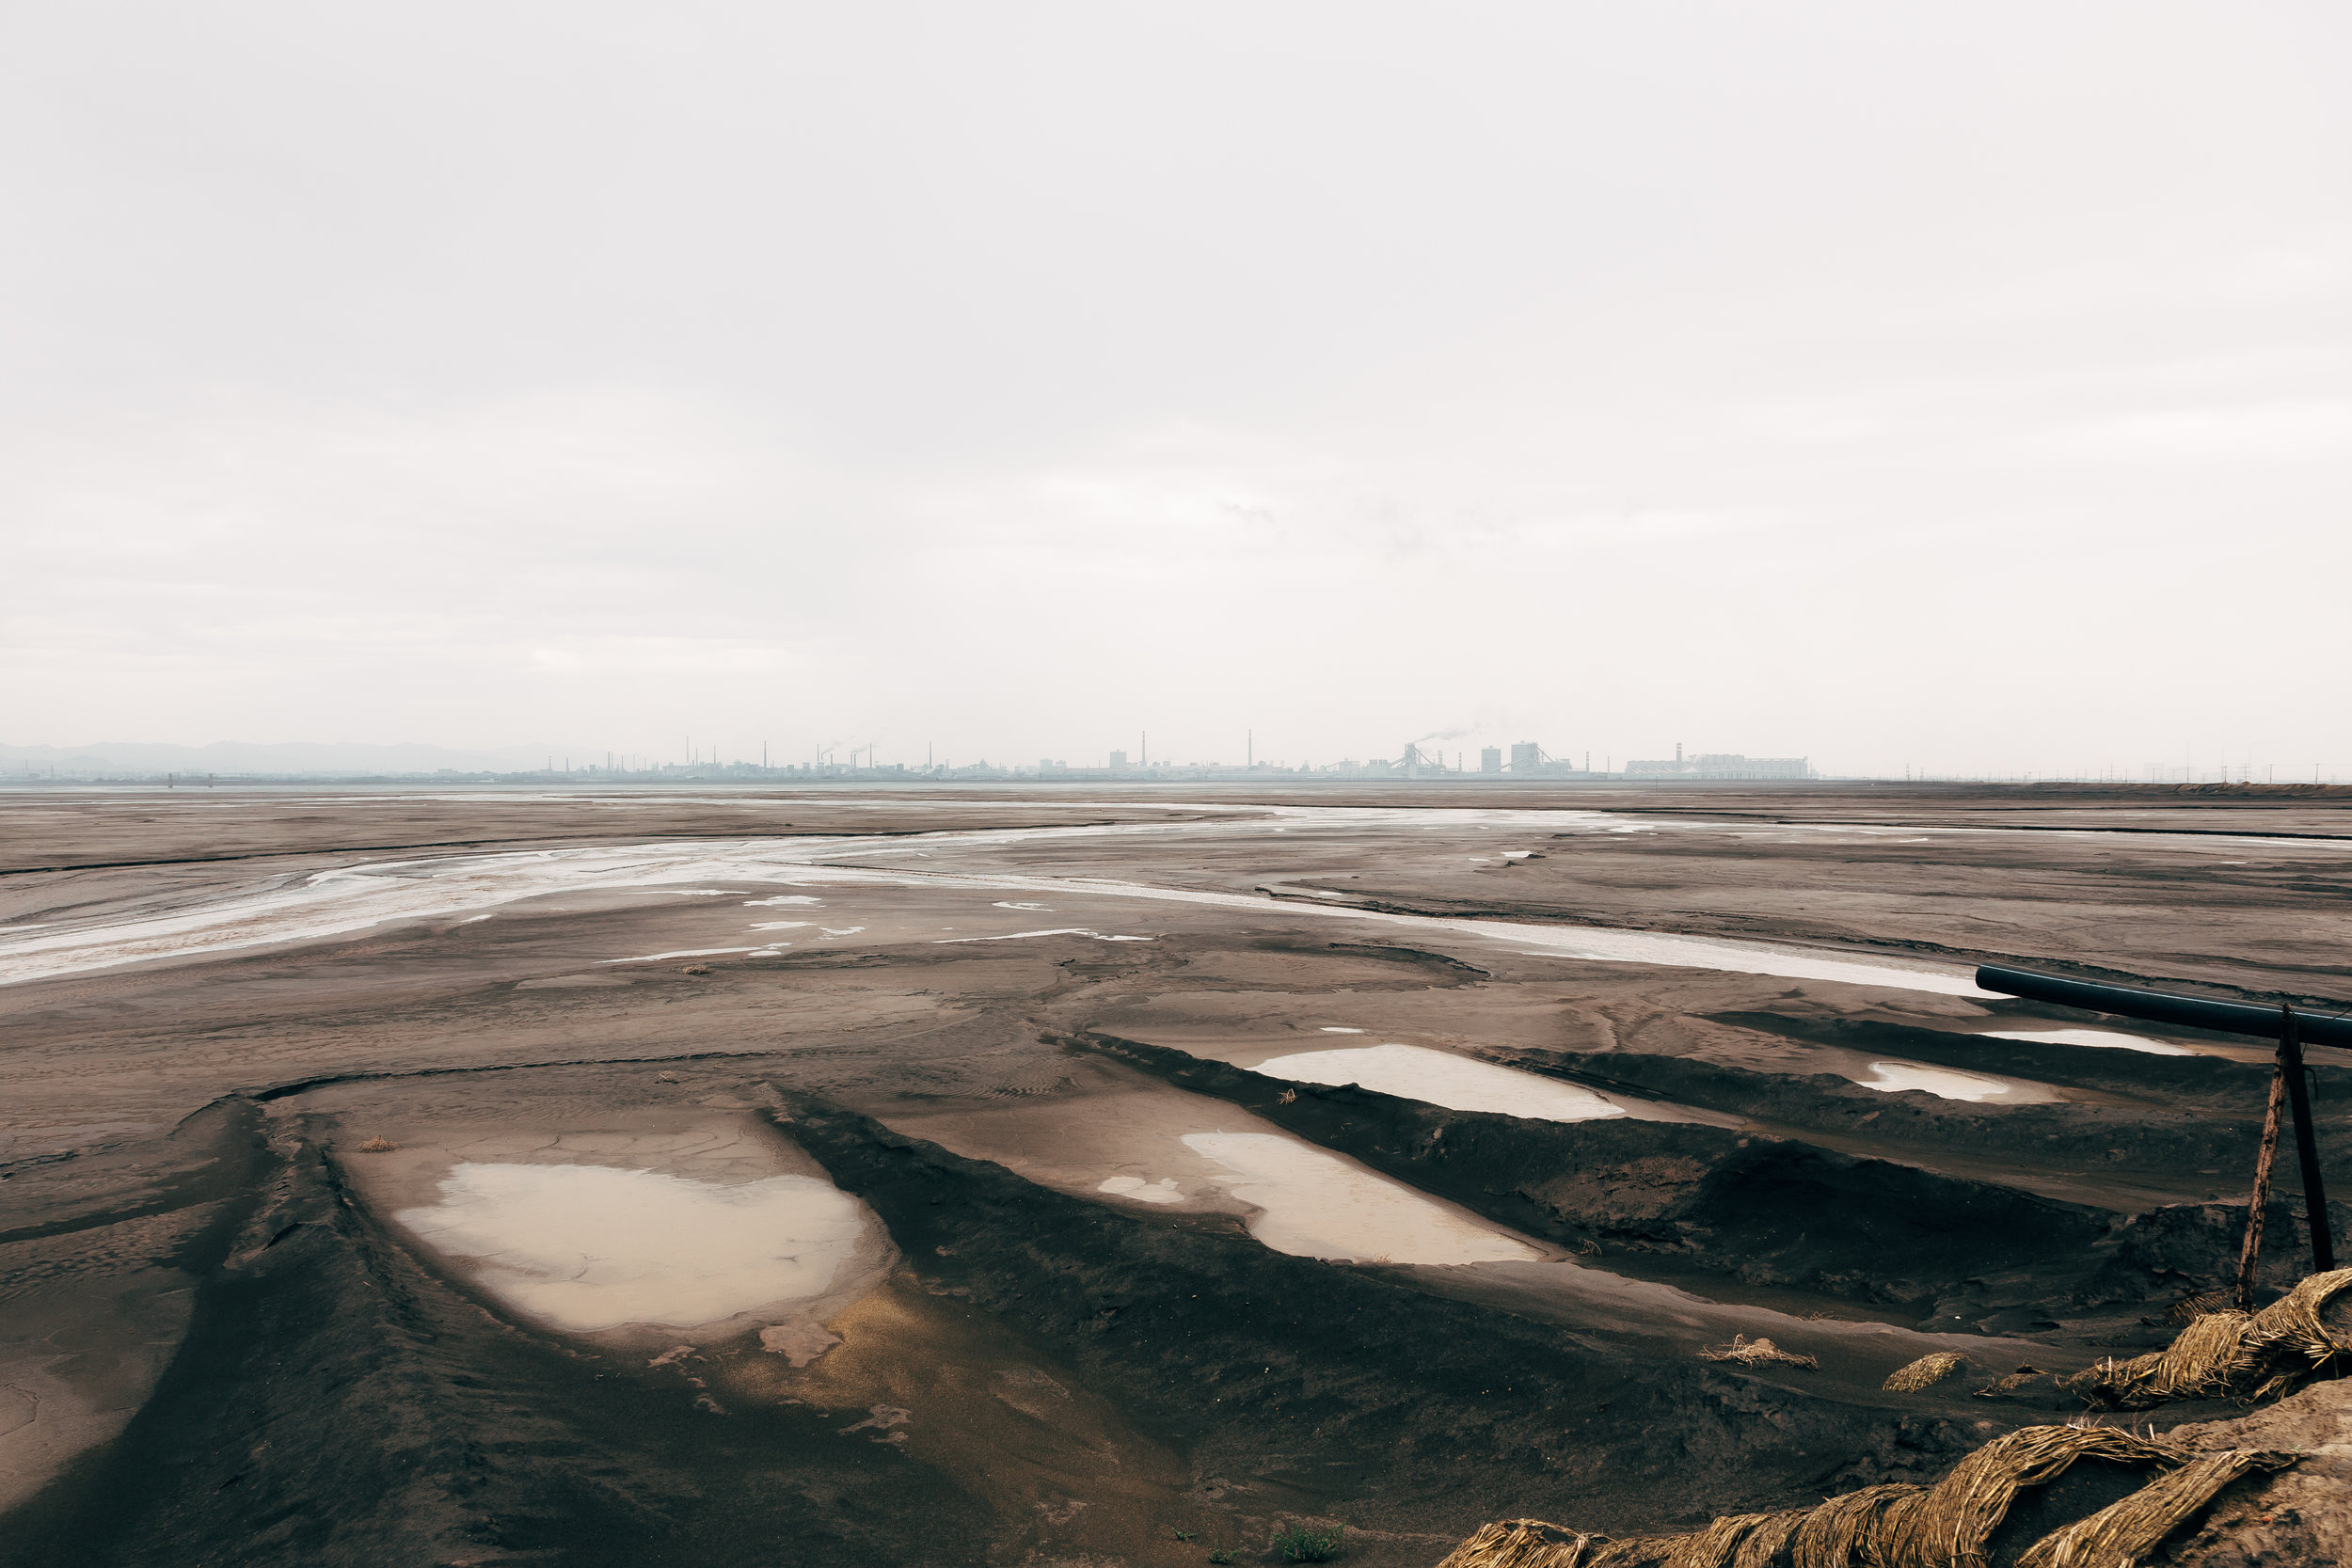 Baotou Tailings Lake III    2015  C-type print; 114 x 160 cm (Edition of 4) or 86 x 120 cm (Edition of 7)